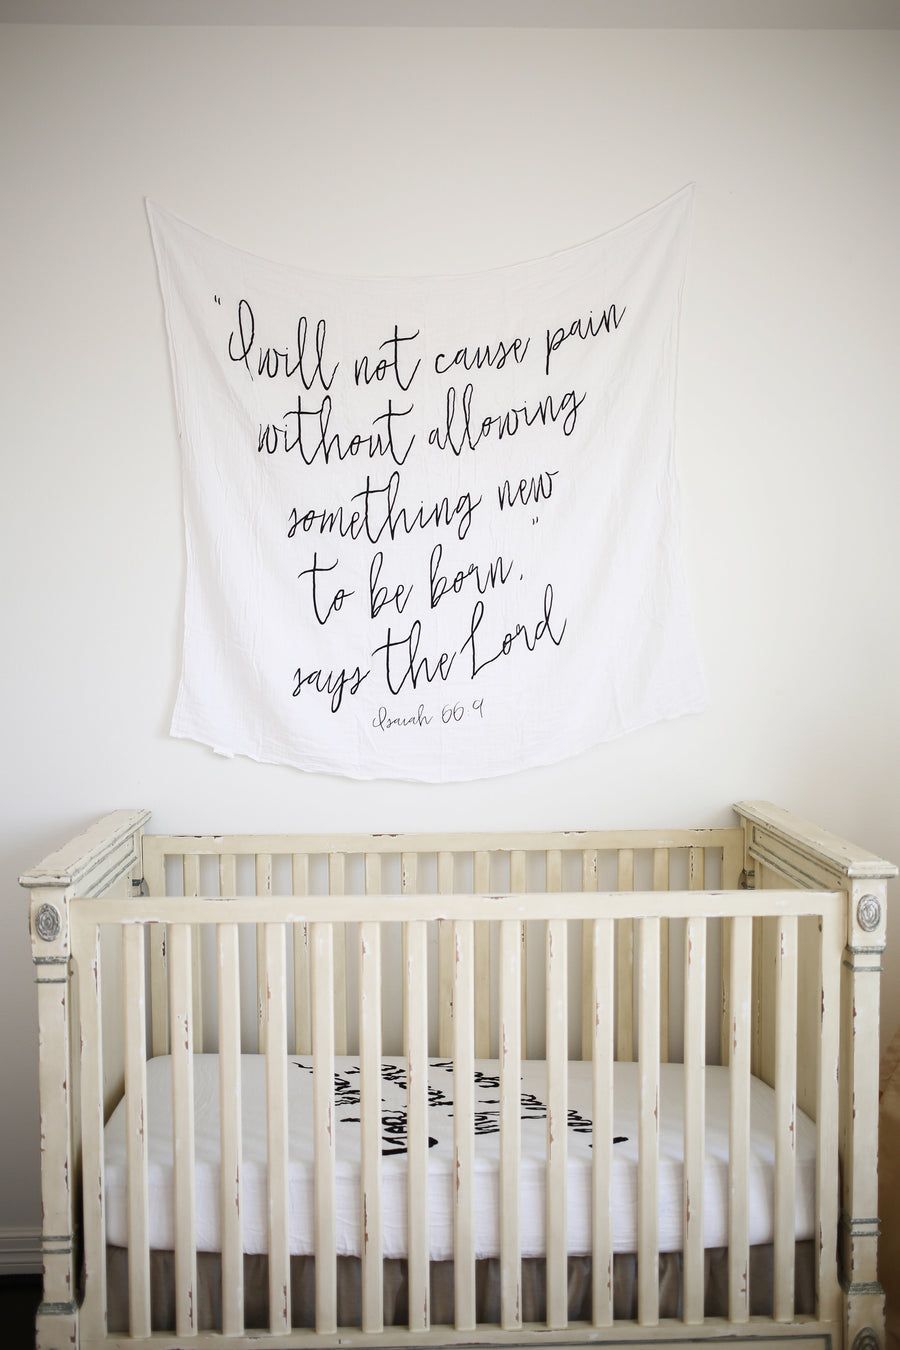 *JUST RESTOCKED* Organic Cotton Muslin Swaddle Blanket + Wall Art -